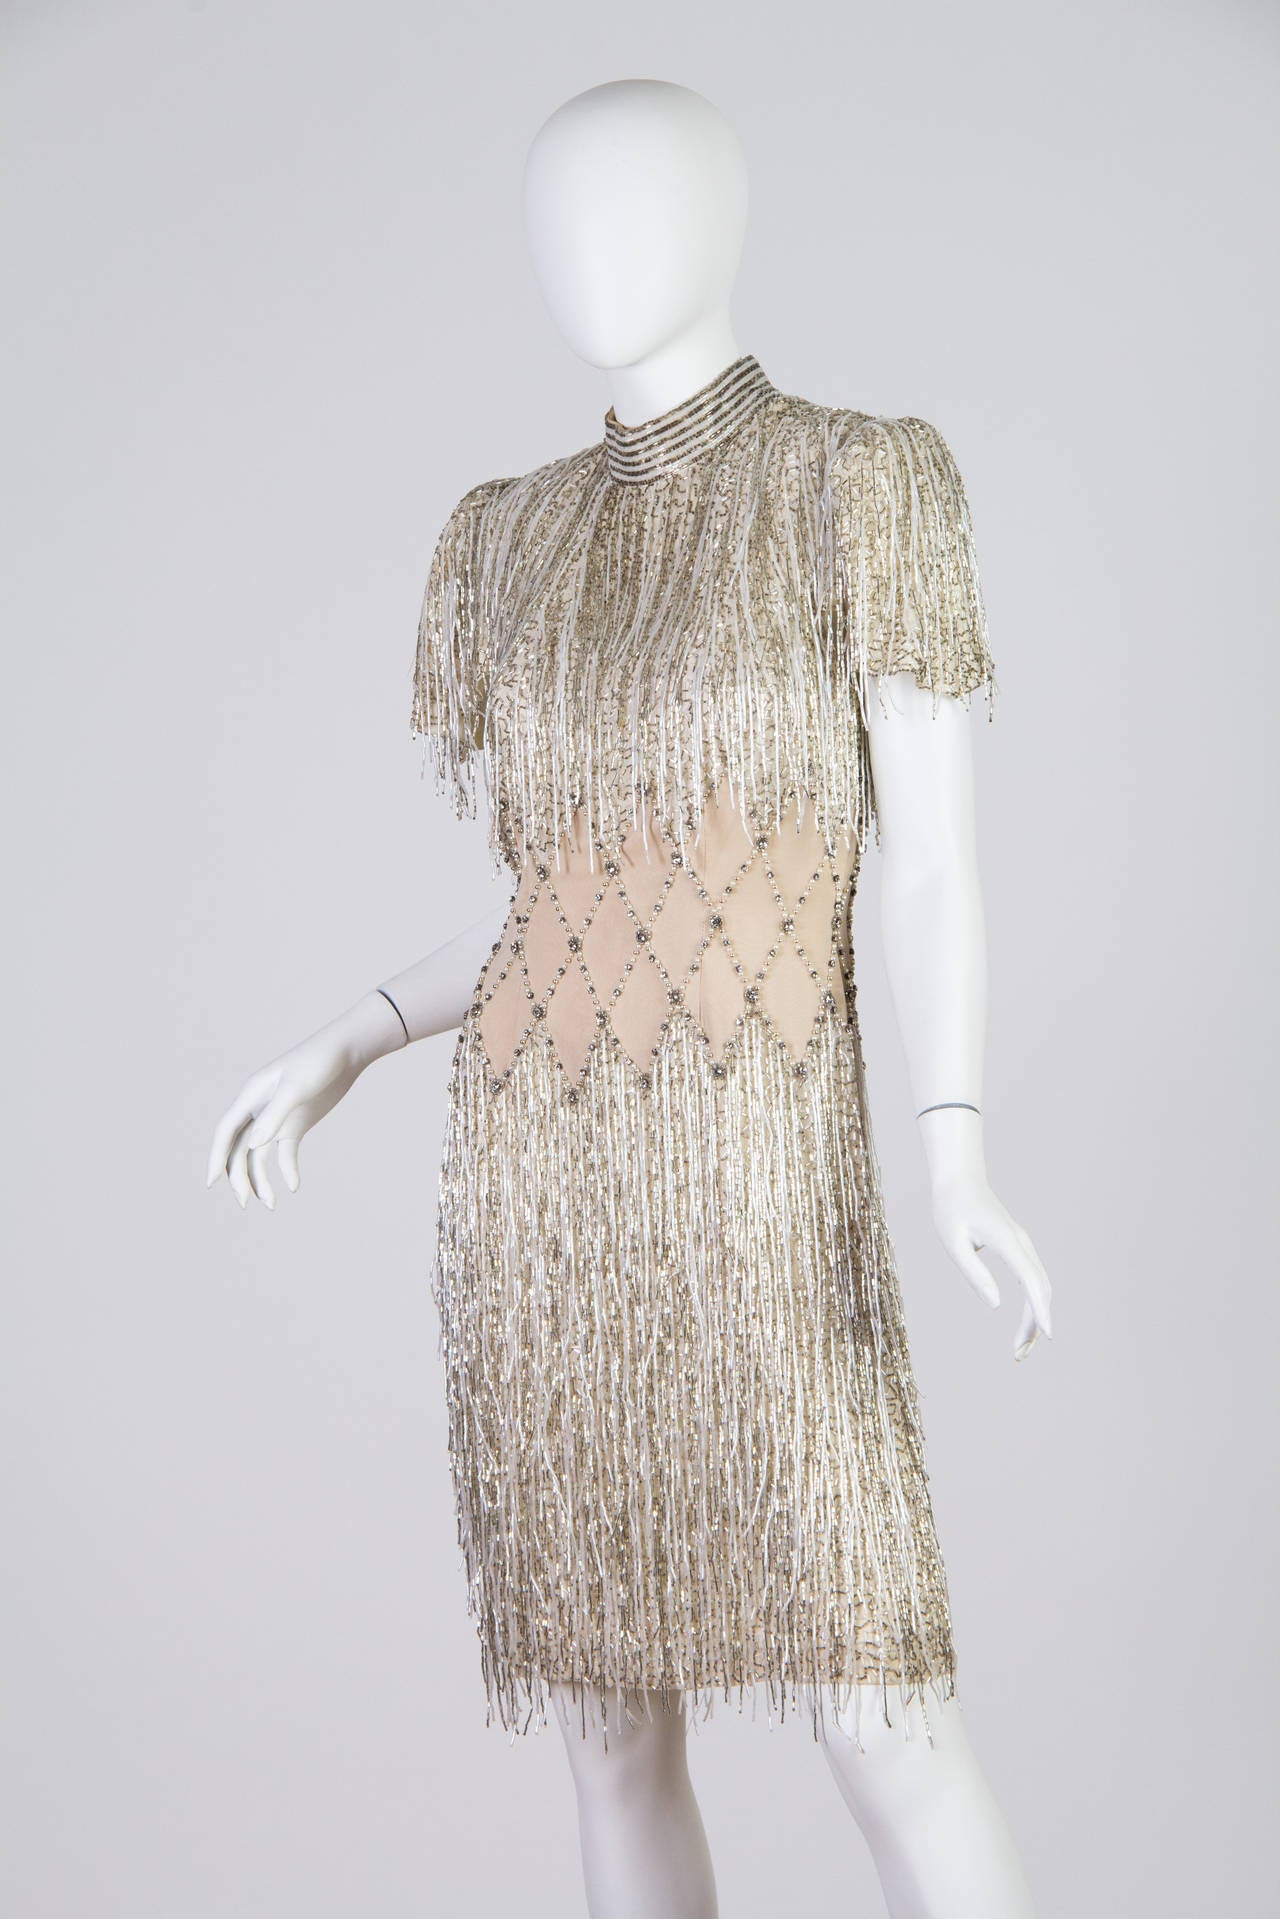 Spectacular Beaded Fringe Dress 2